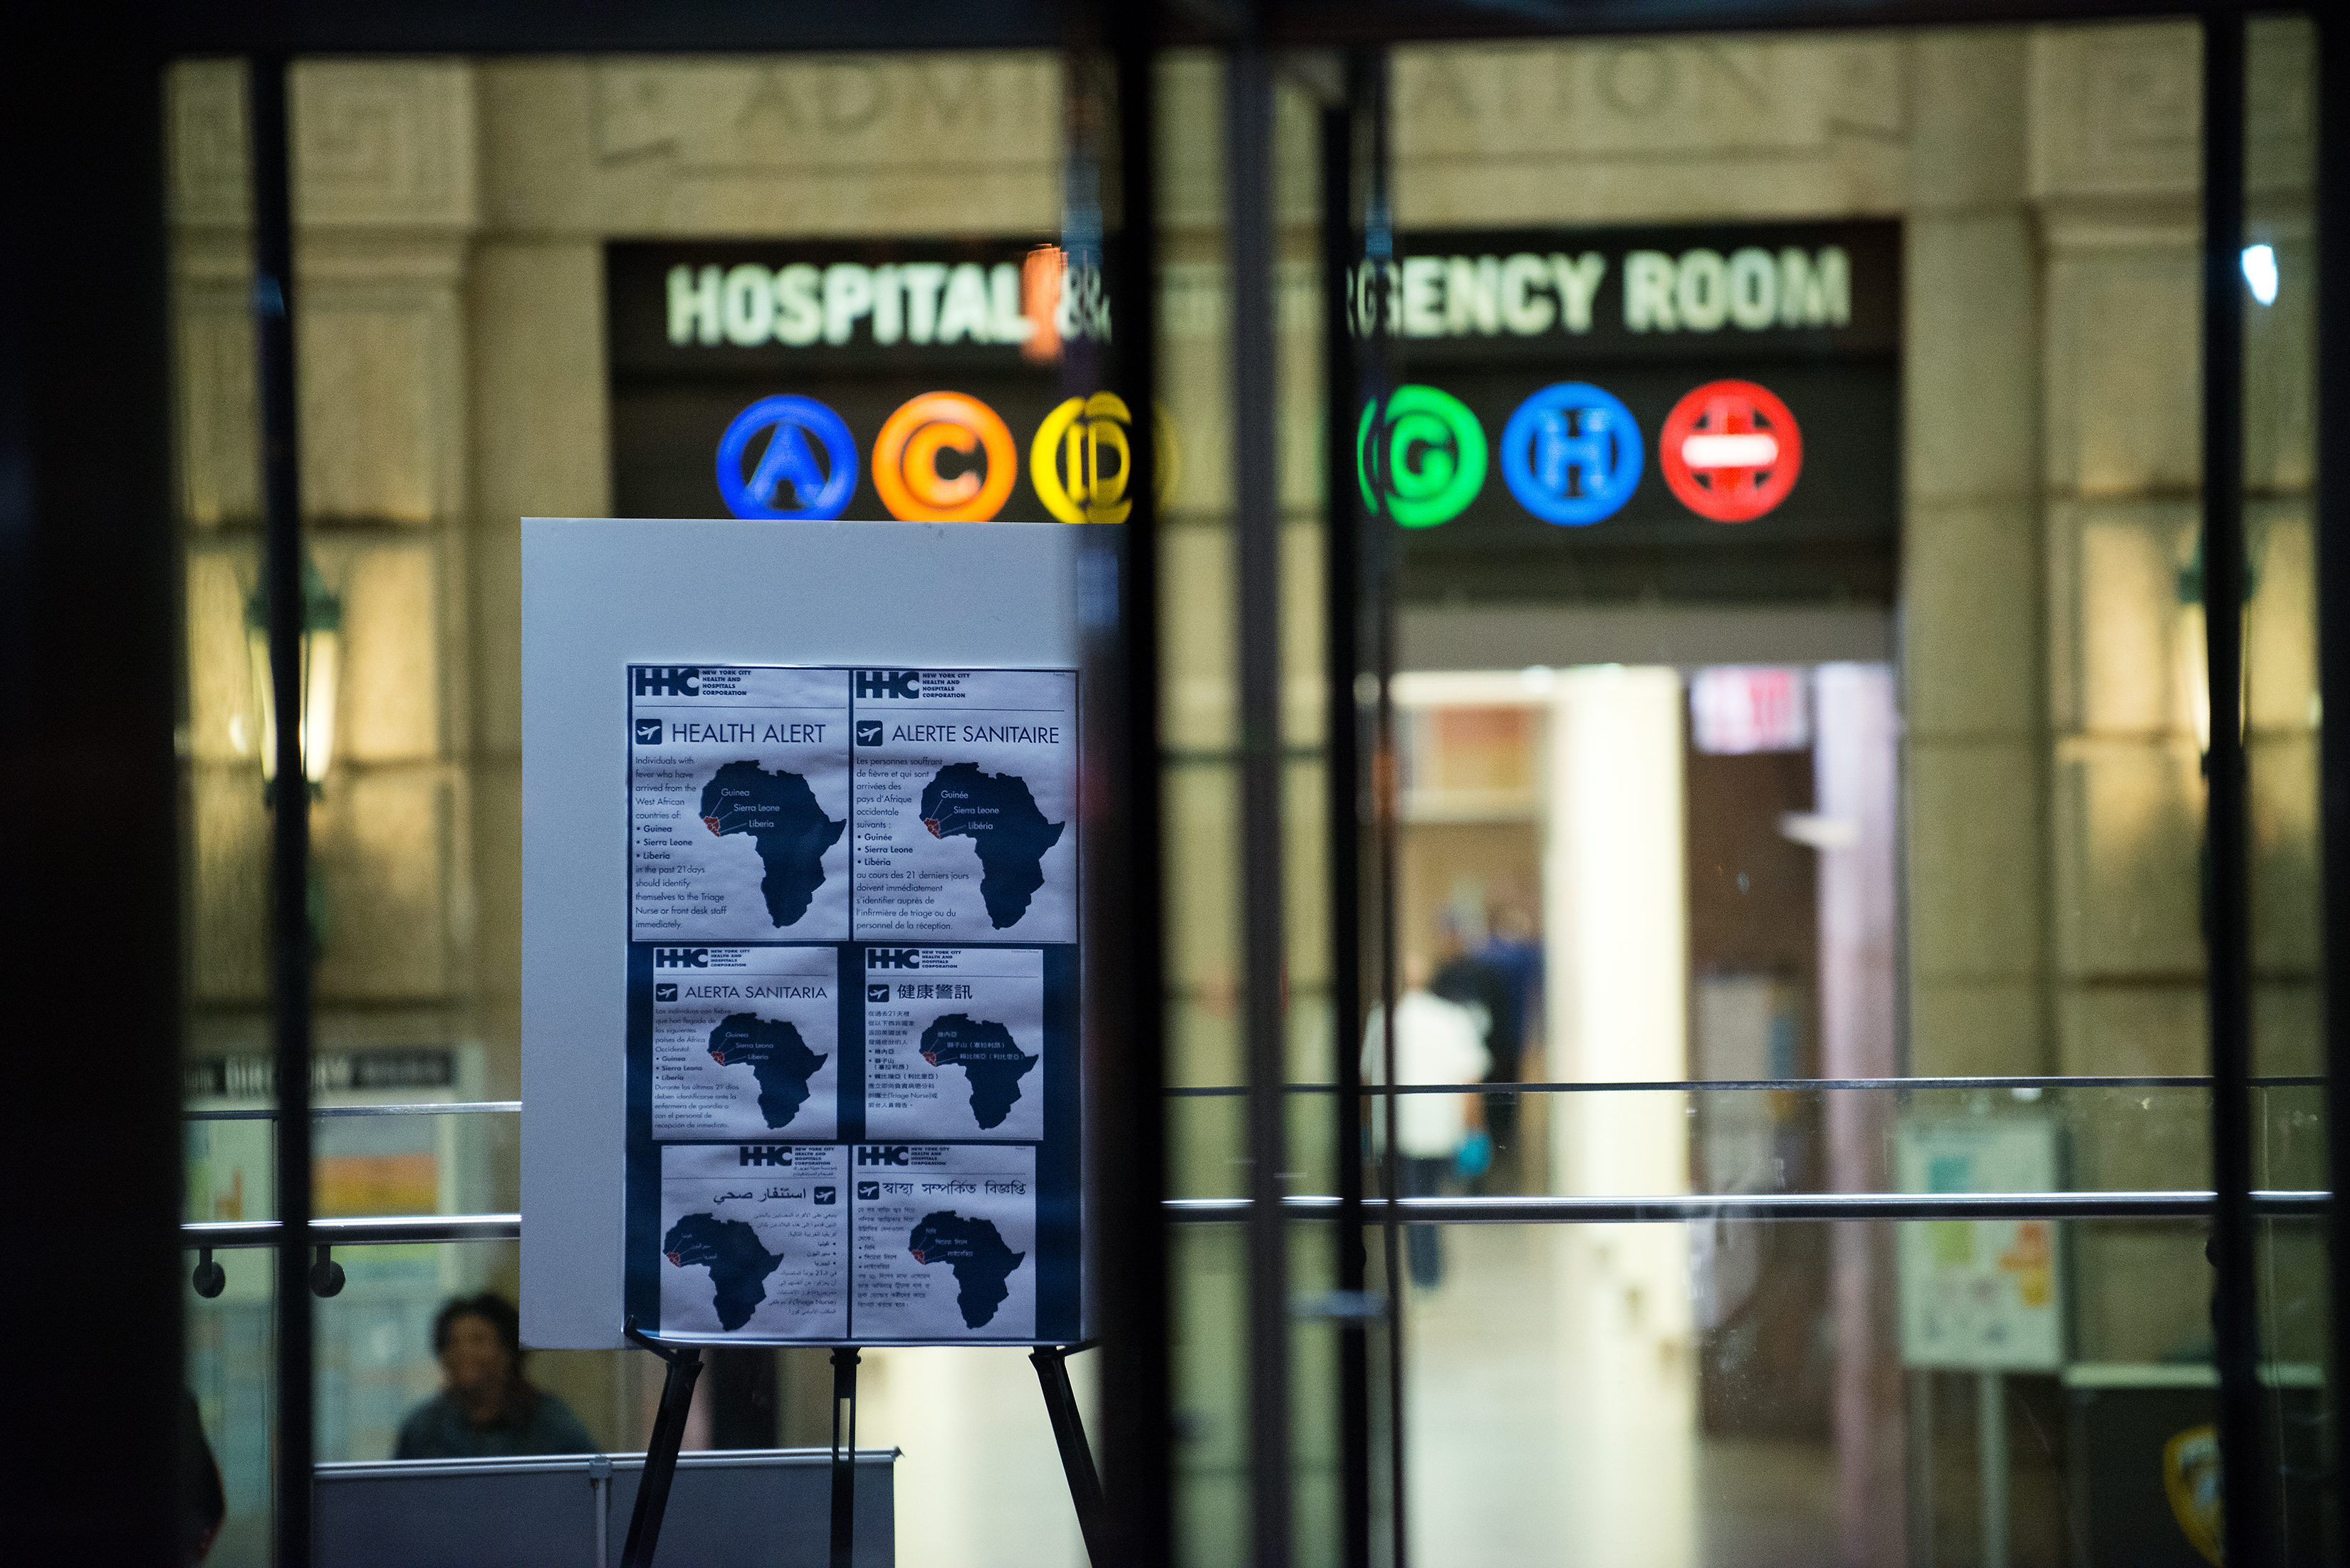 A health alert is displayed at the entrance to Bellevue Hospital October 23, 2014 in New York City.